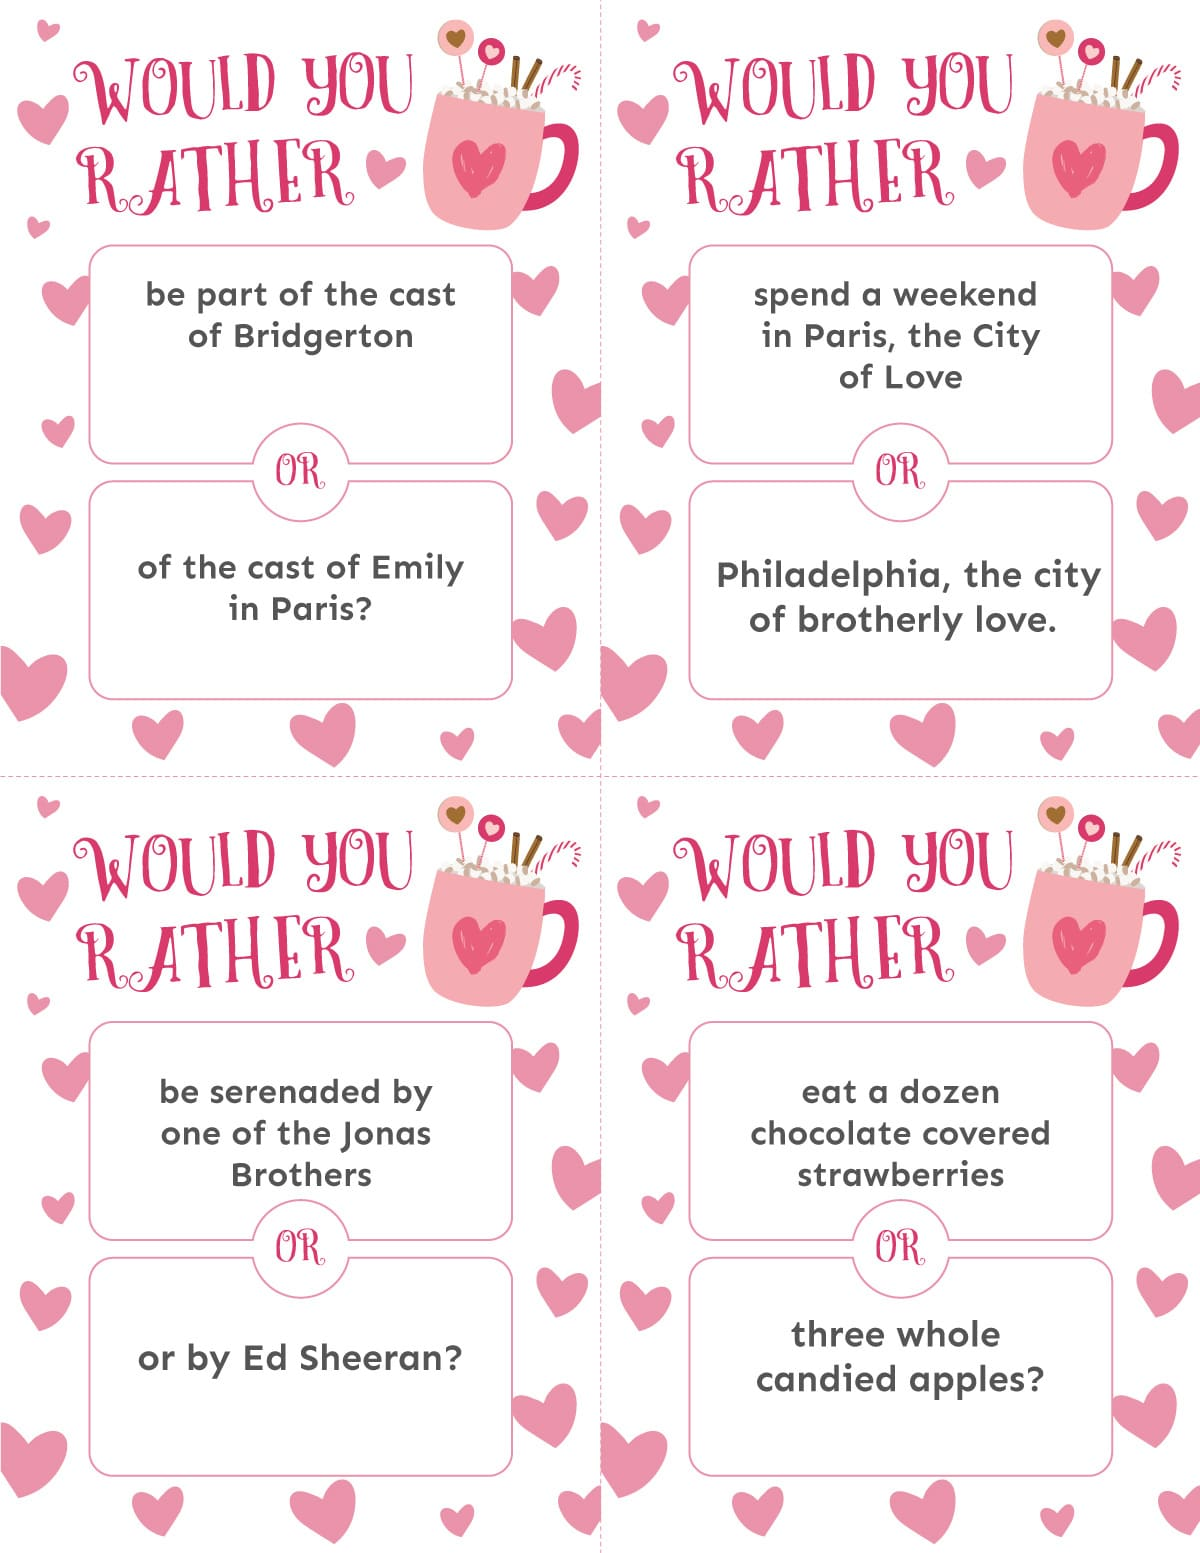 Valentine's Day would you rather printable